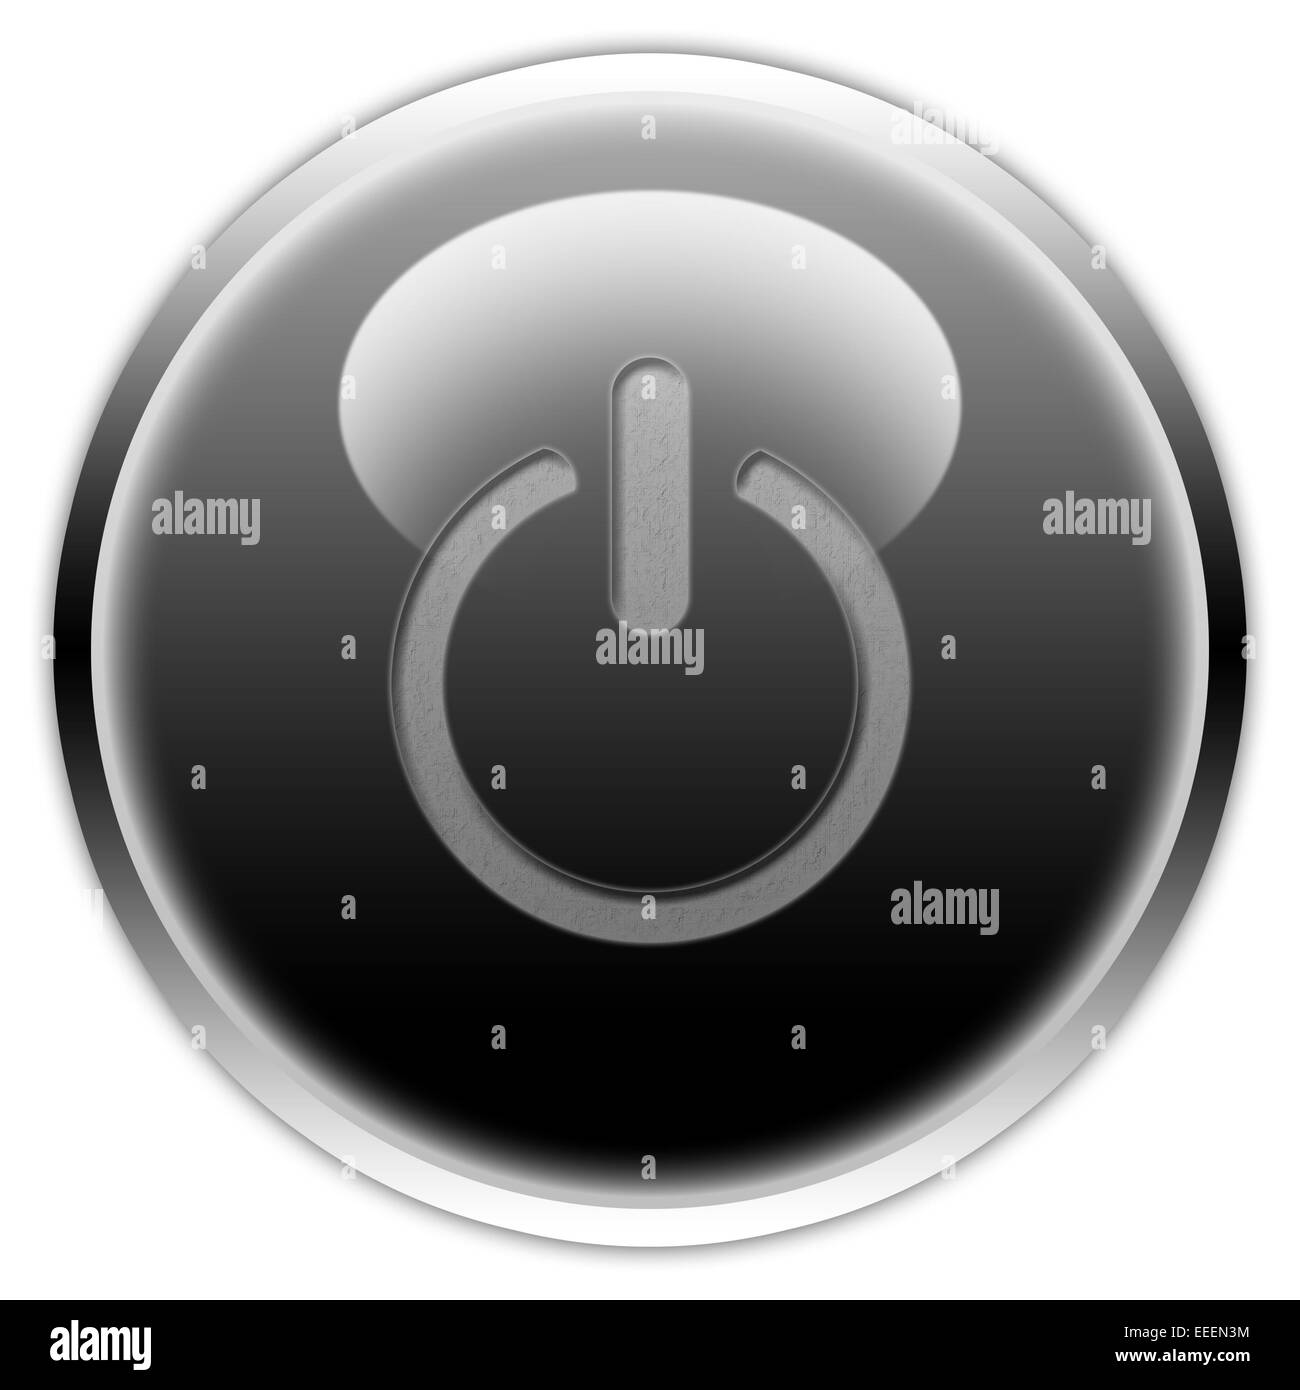 On Off Switch Symbols Image social marketing campaigns examples ...